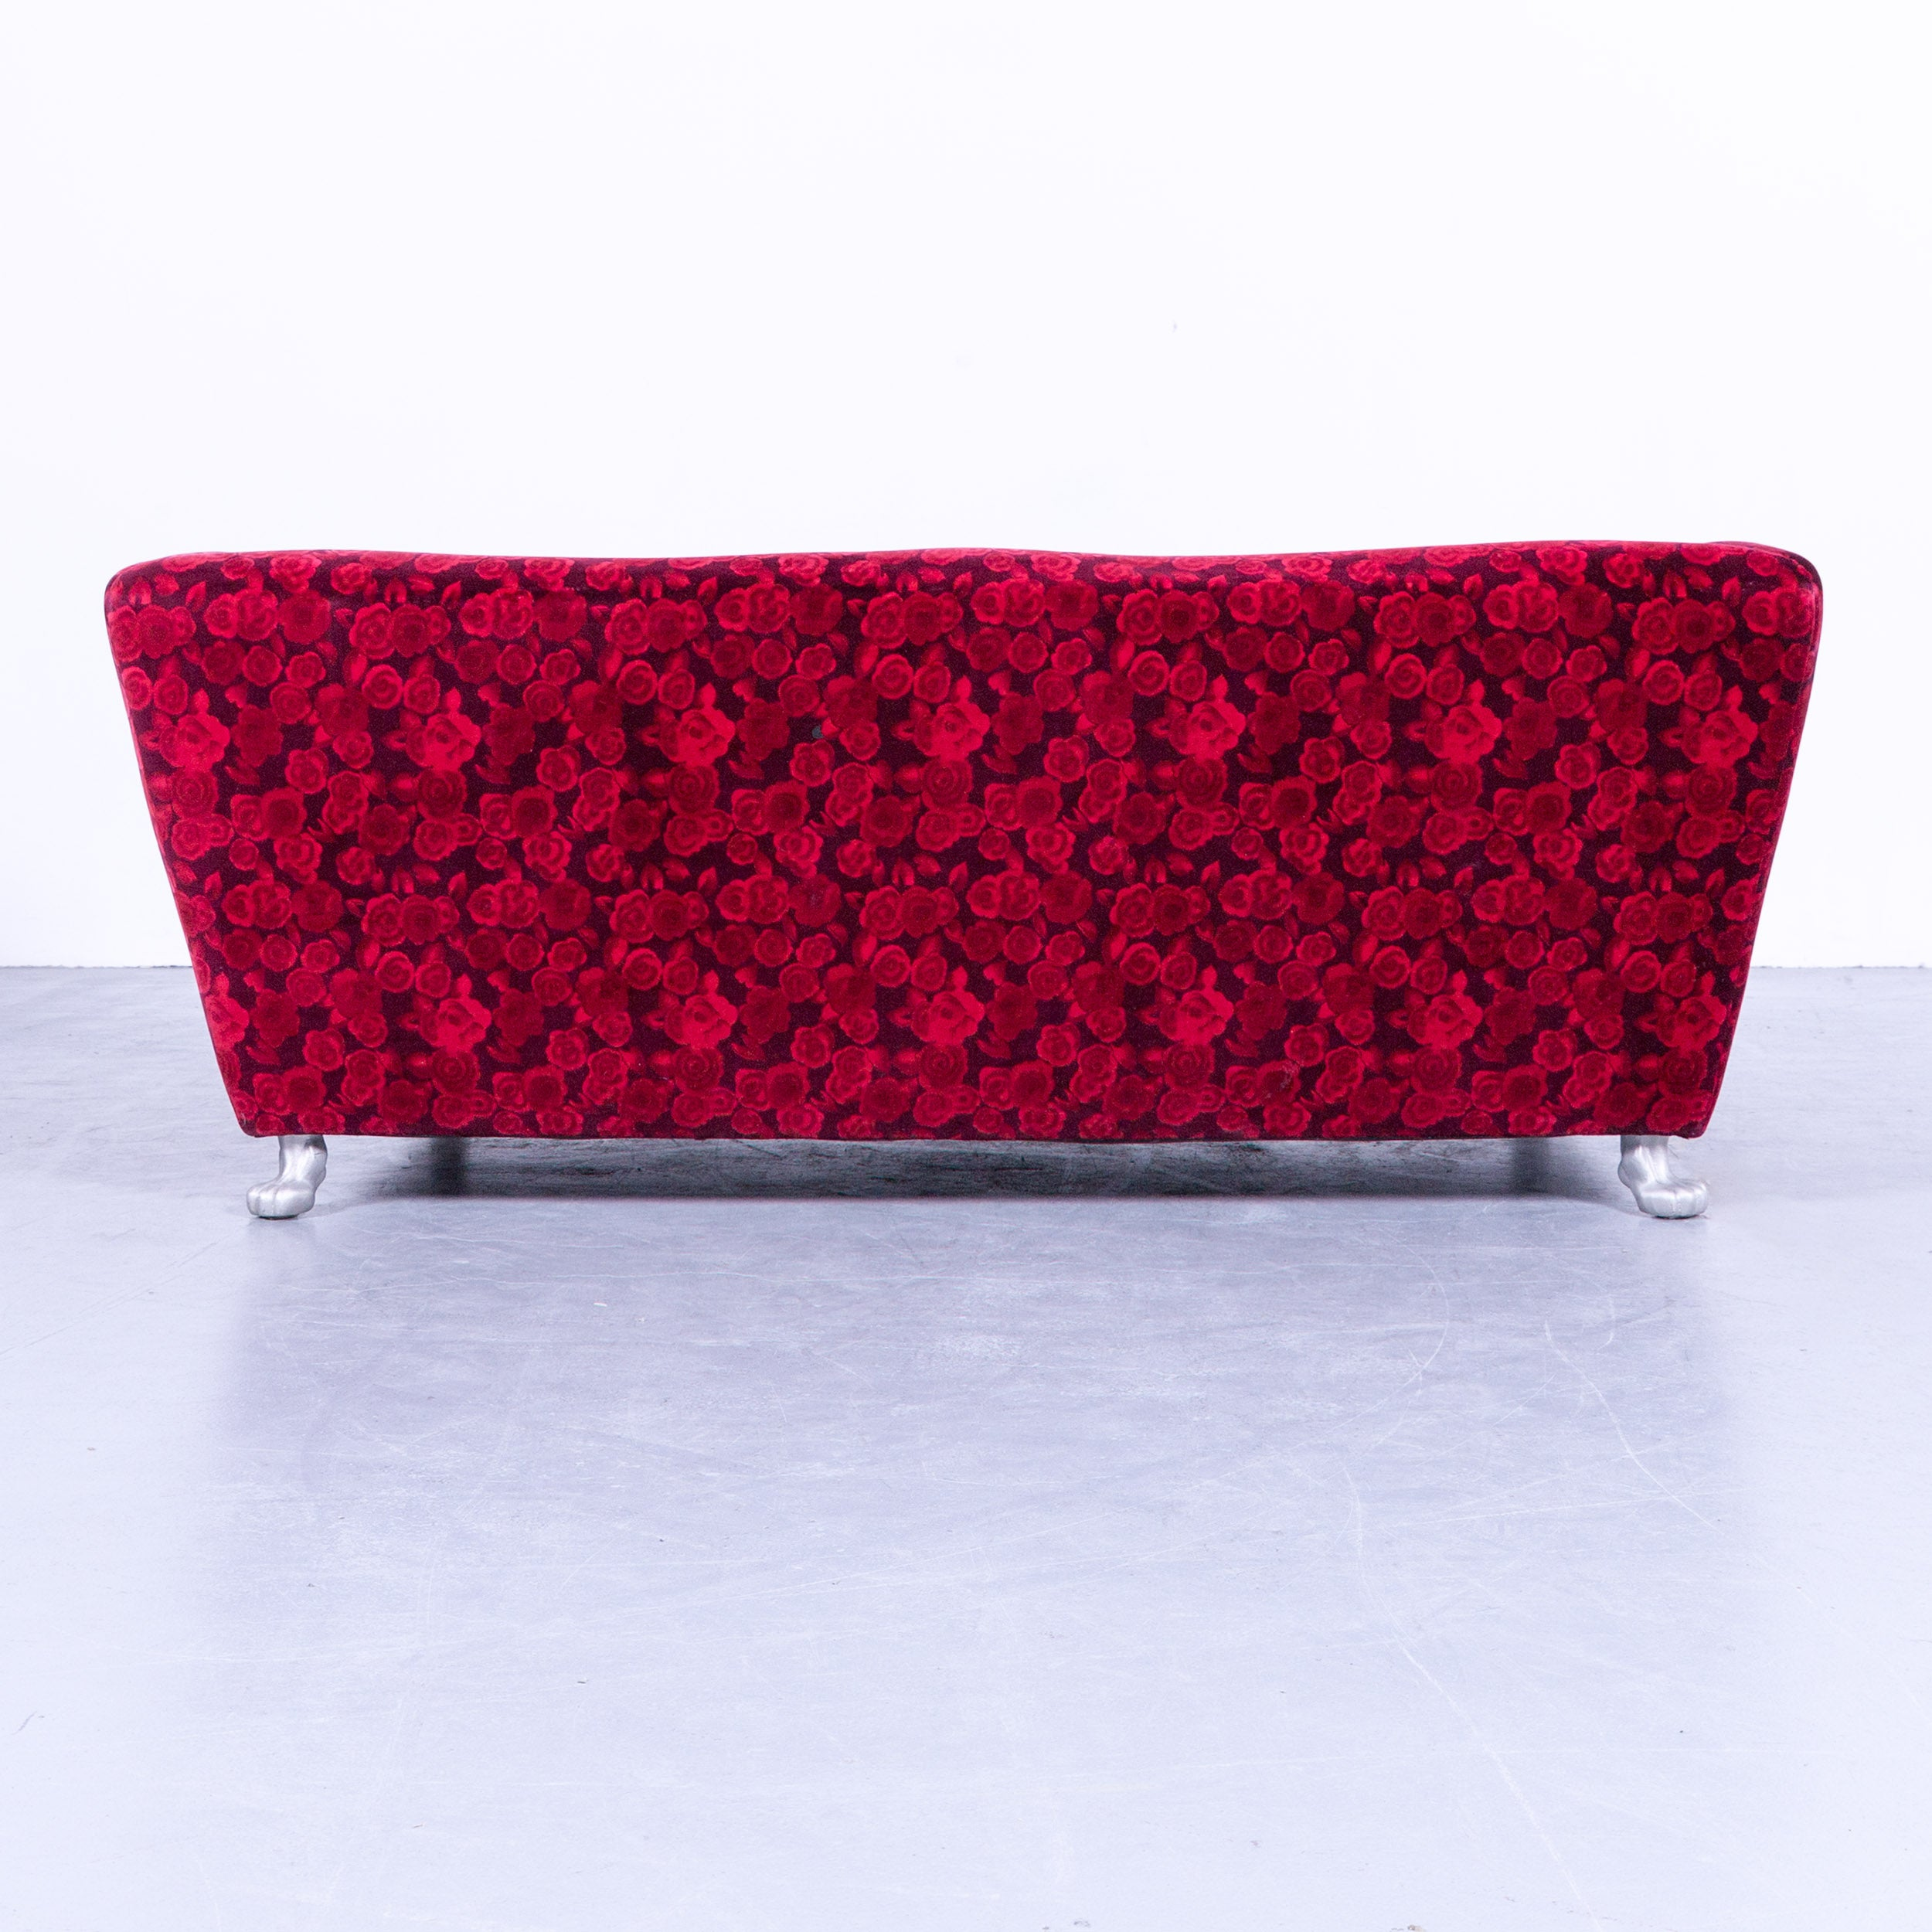 Bretz Sofa Bretz Monster Sofa Red Fabric Three Seat Couch Rose Pattern Couch